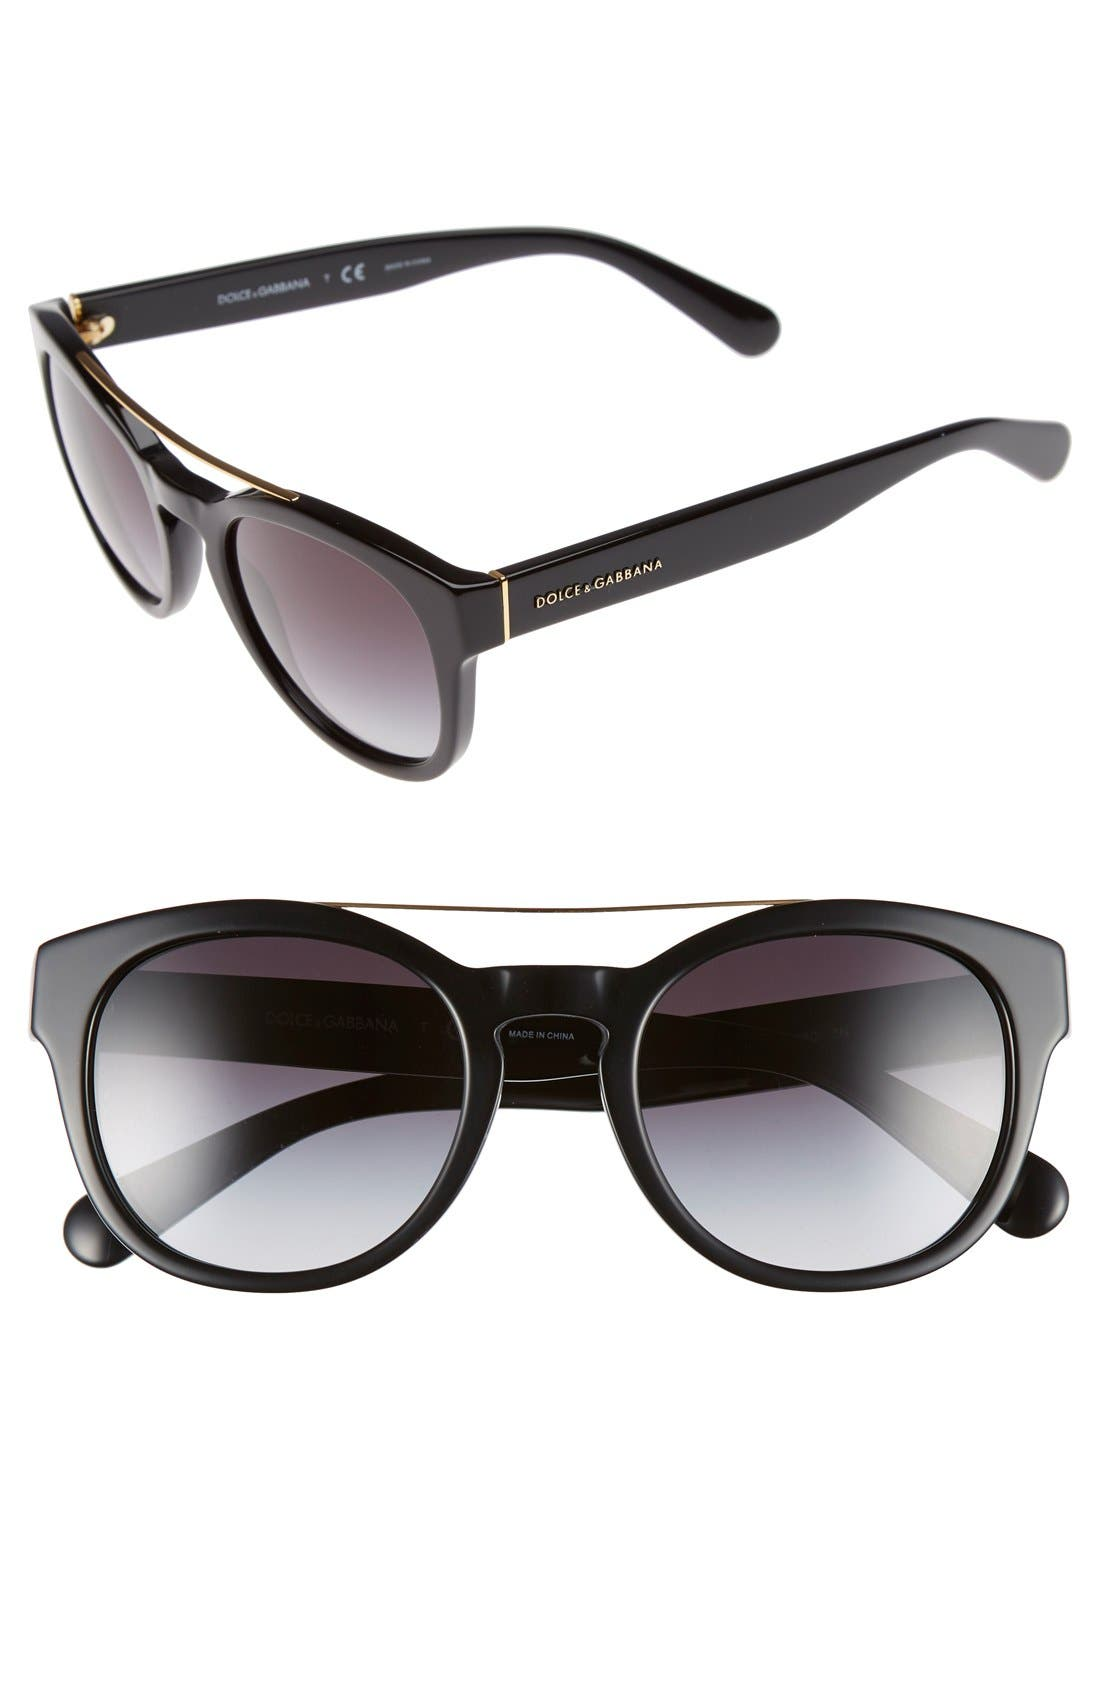 50mm Sunglasses,                         Main,                         color, 001